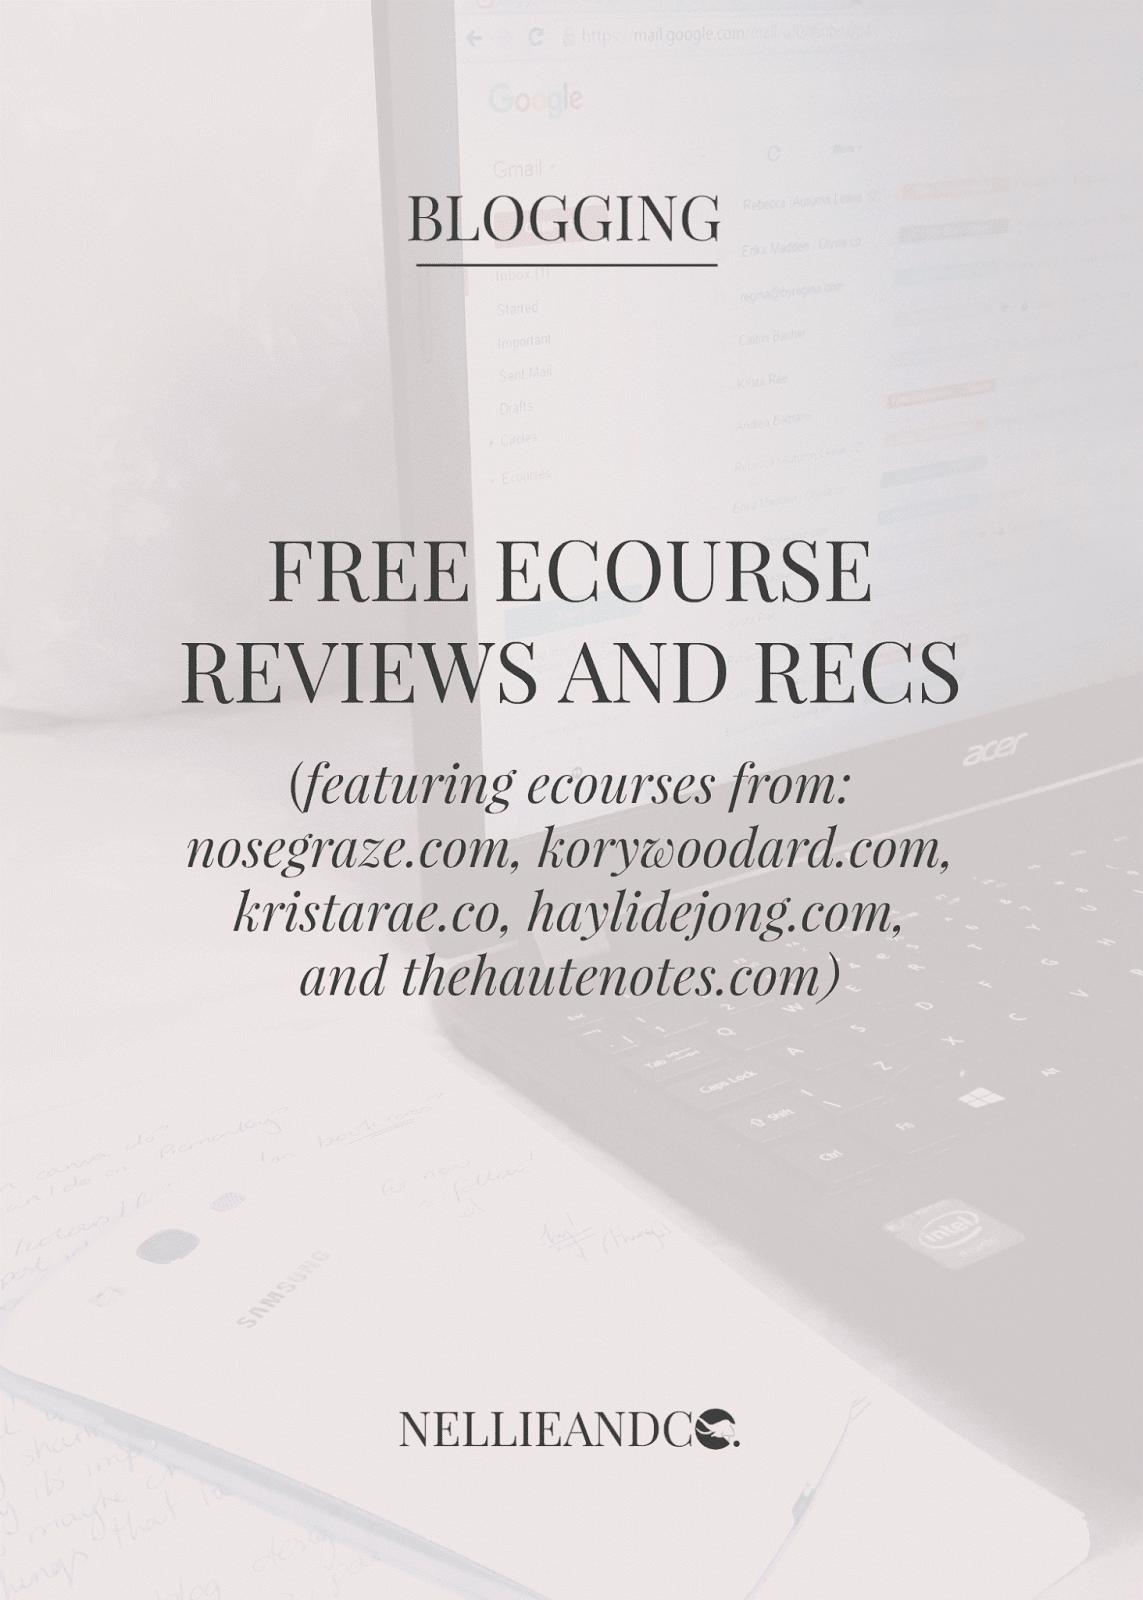 With all the free ecourses out there, what's worth checking out, and what's worth avoiding? I review another 5 to make the decision easier for you!